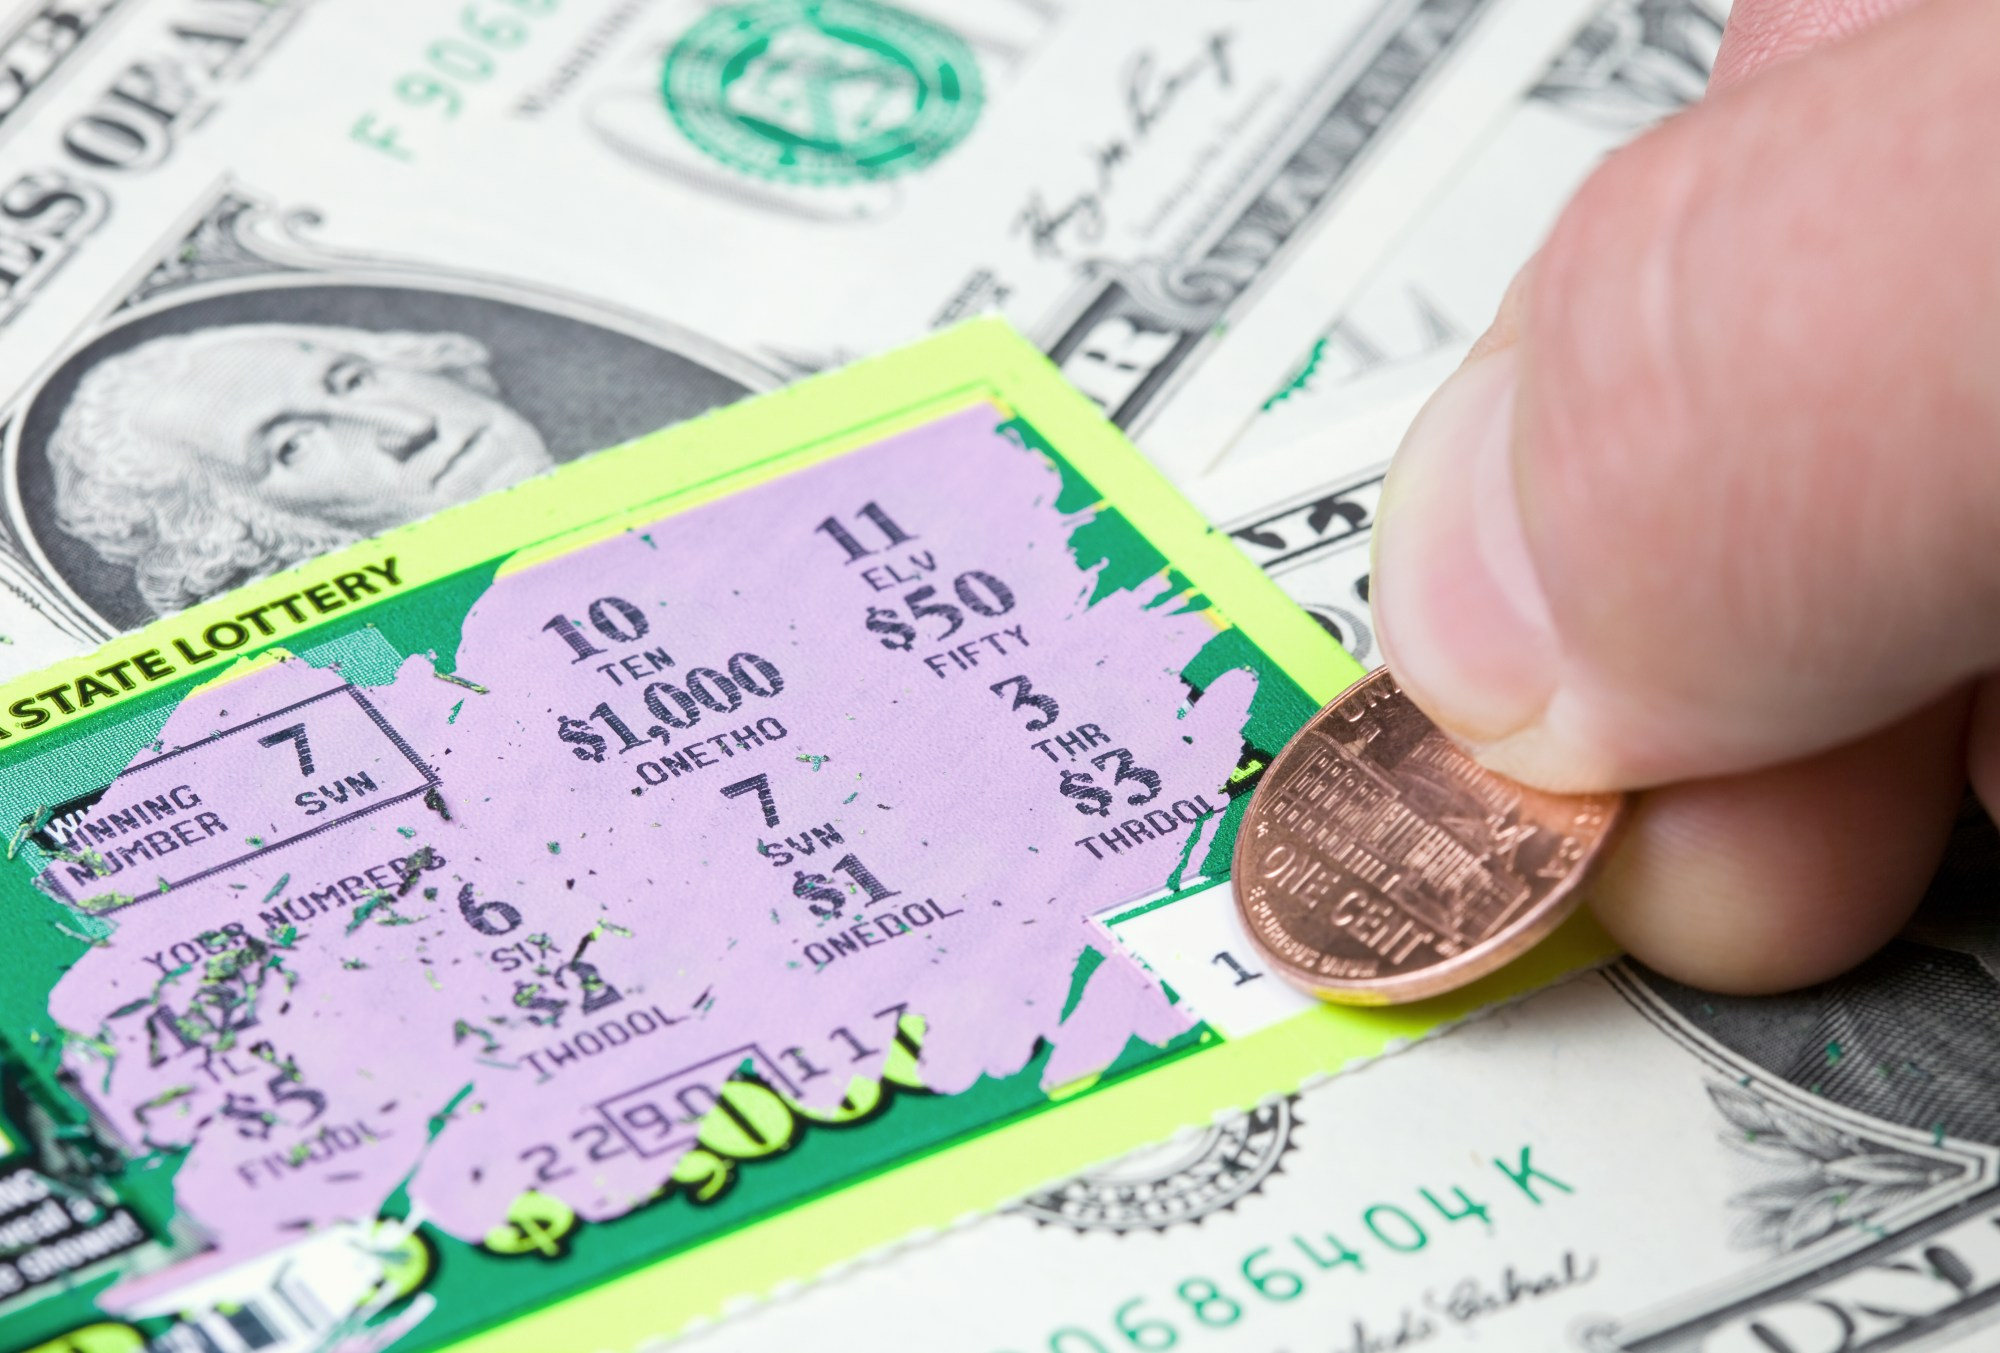 A lottery scratcher is seen in a file photo. (iStock/Getty images Plus)